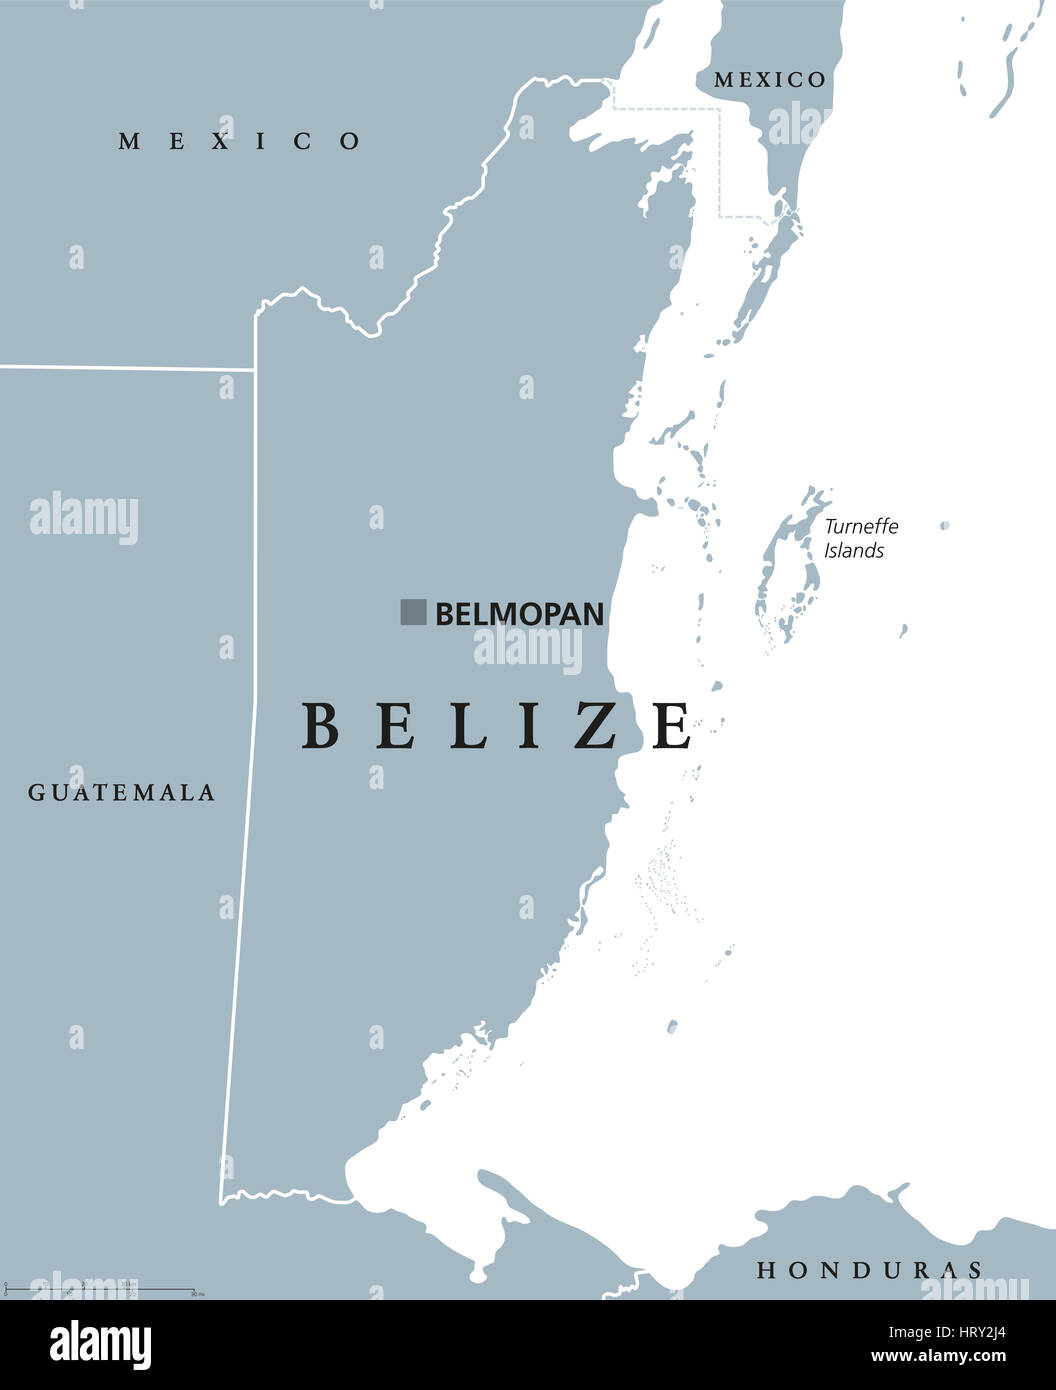 Belize Political Map With Capital Belmopan And National Borders - belmopan map